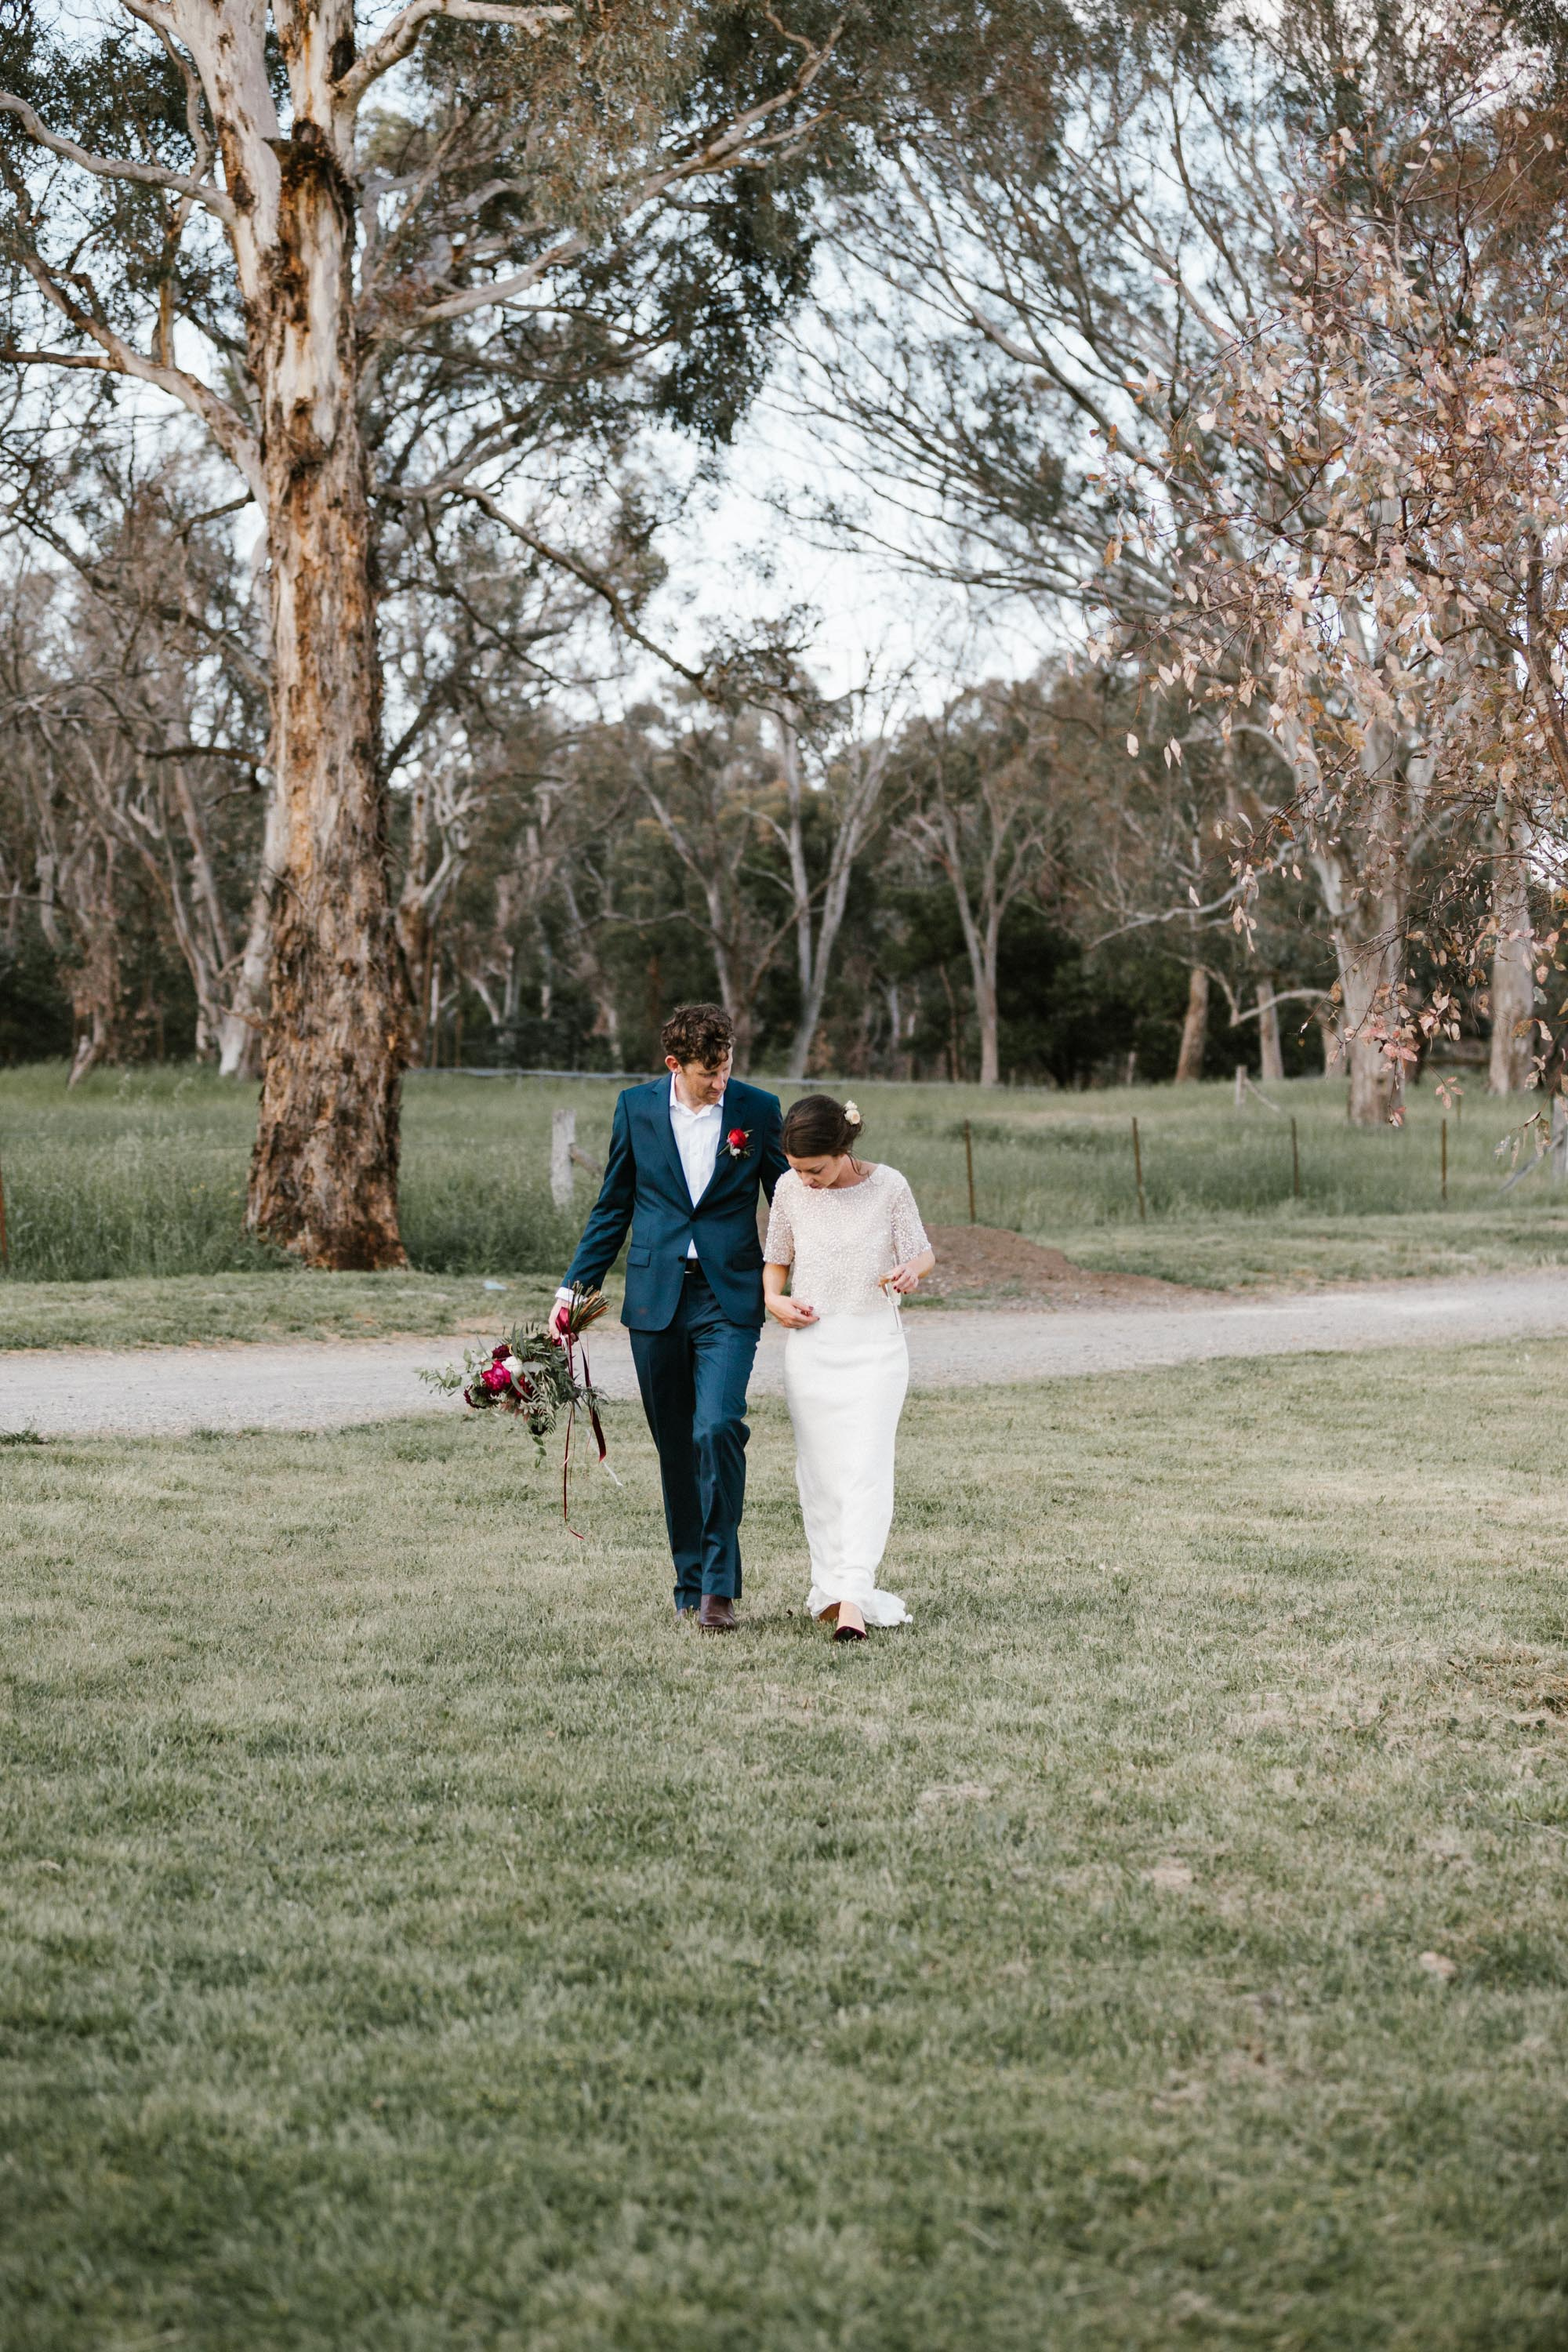 Country Wedding, Australian Wedding, Southern Highlands Wedding photographer, canberra wedding photographer, wedding photography canberra, bowral wedding, wedshed, hercanberra wedding